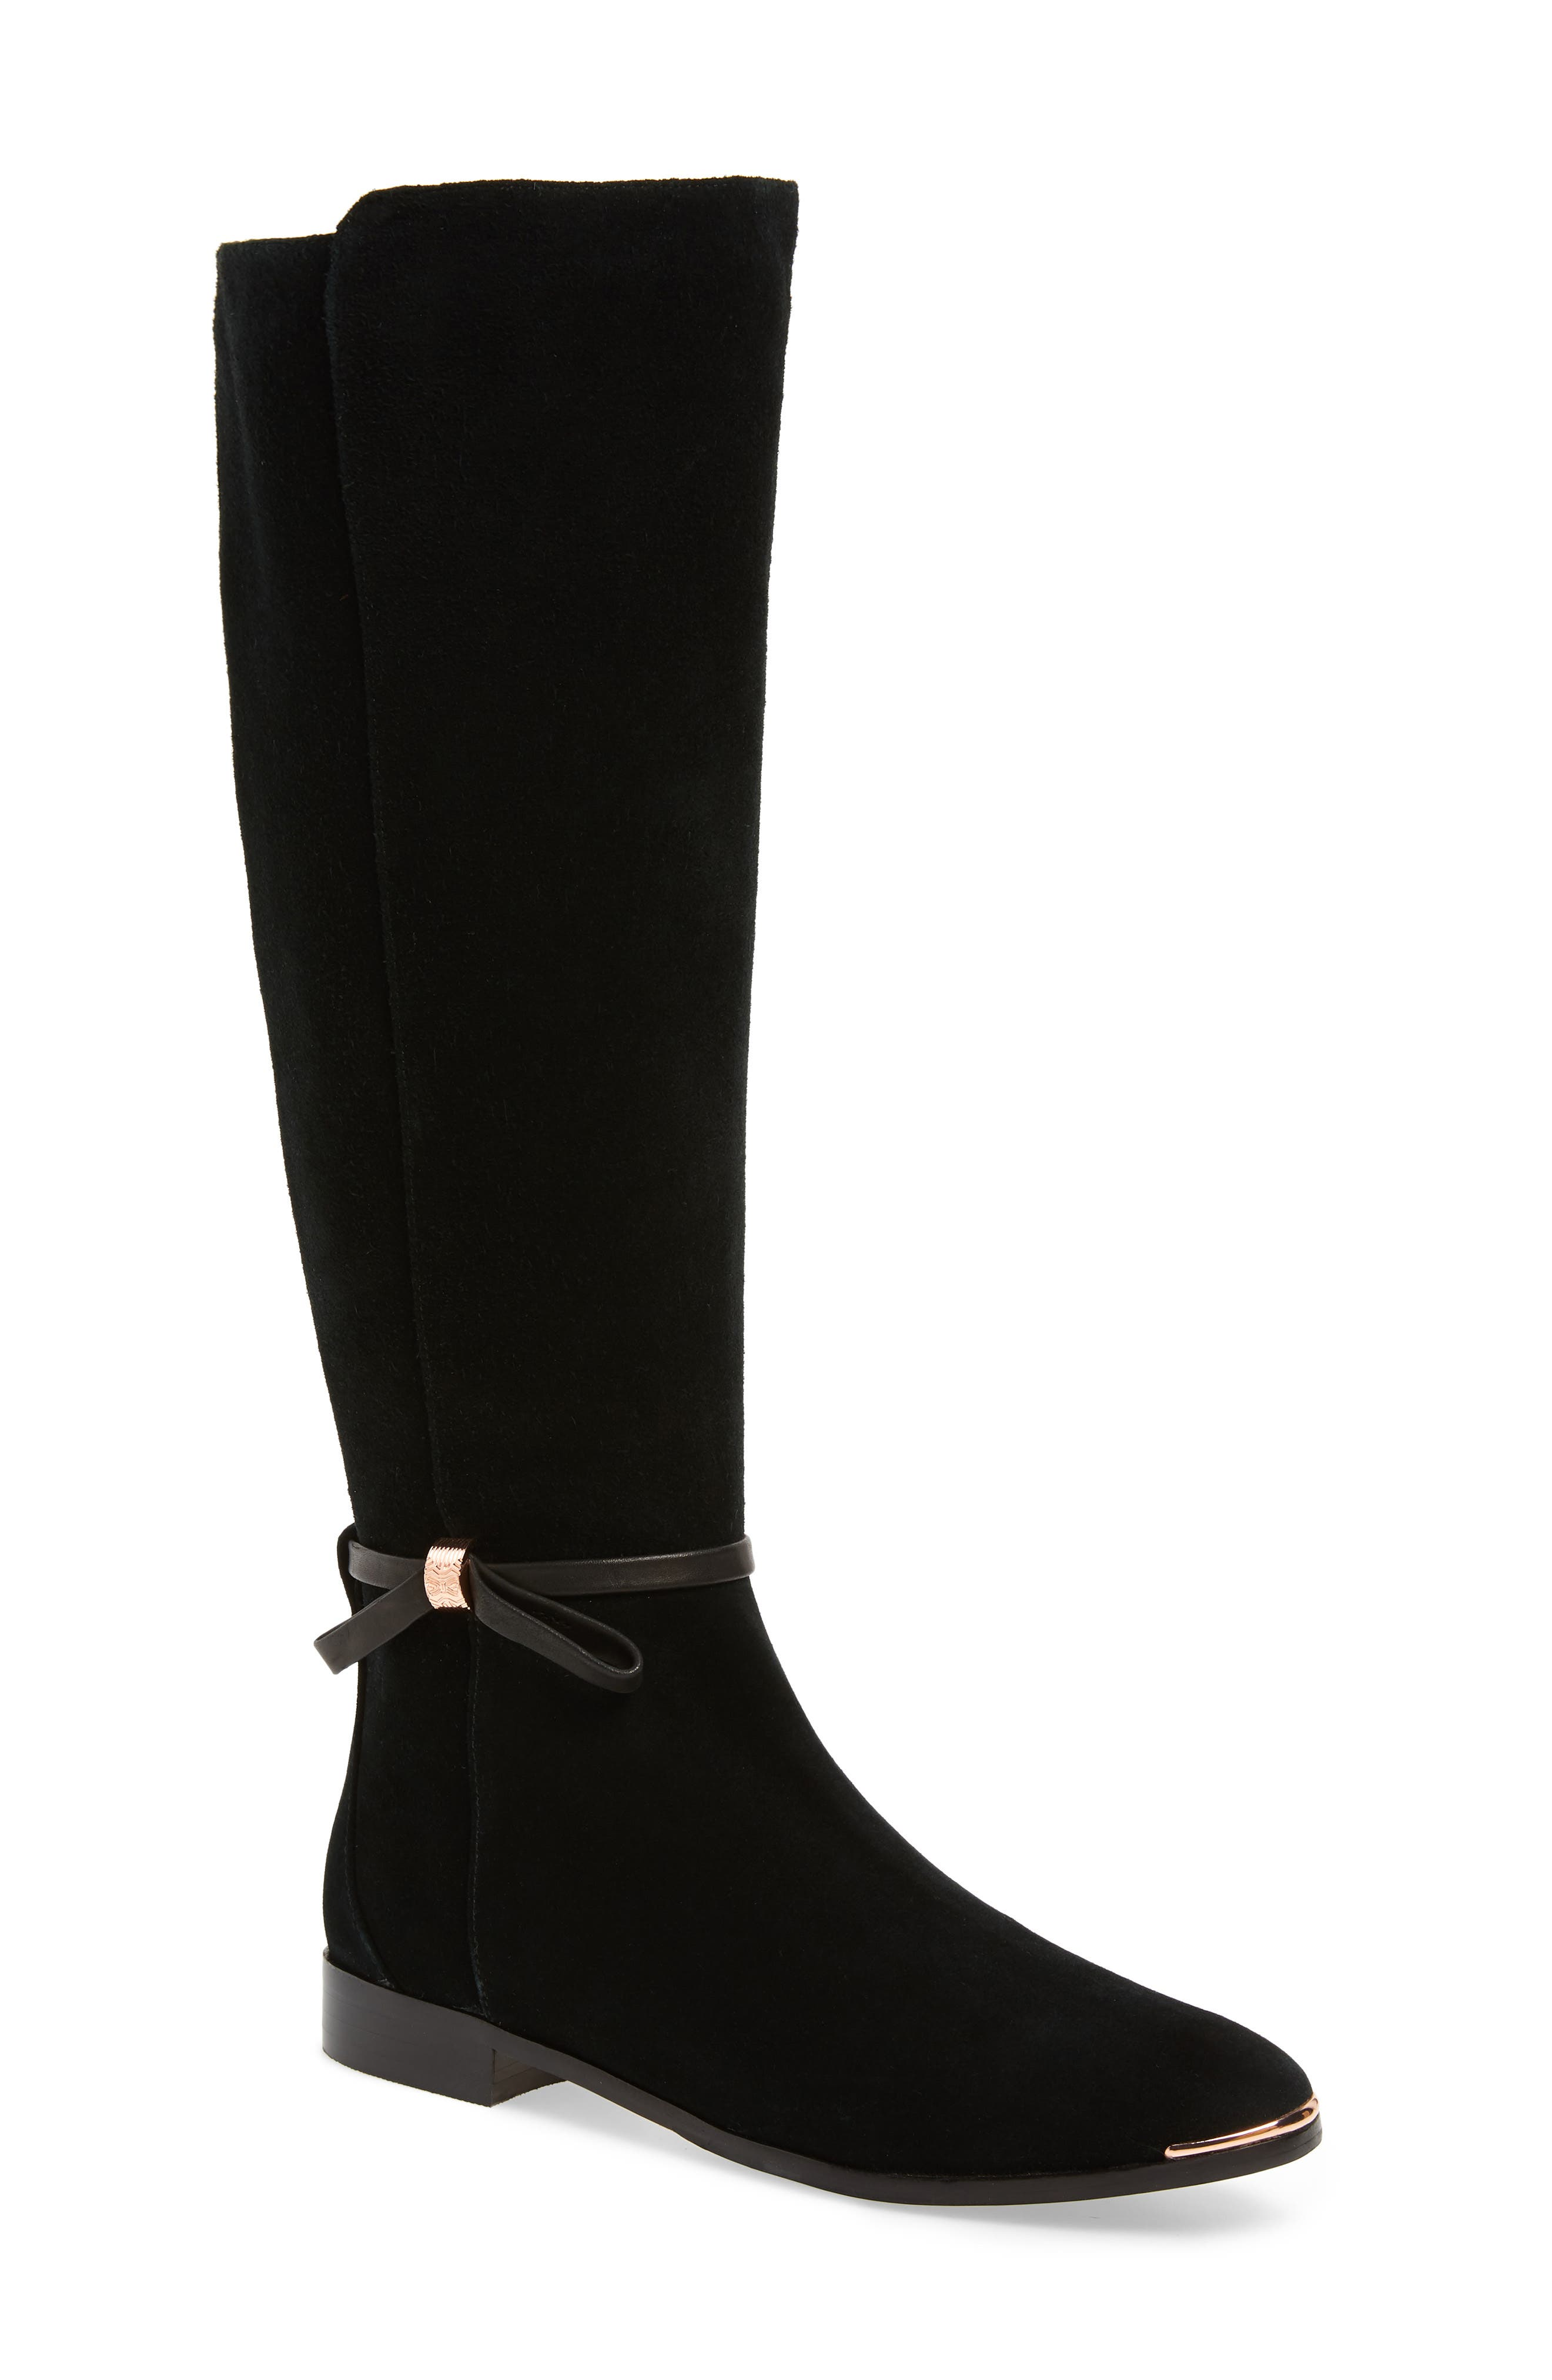 Lykla Knee High Boot,                         Main,                         color, BLACK SUEDE